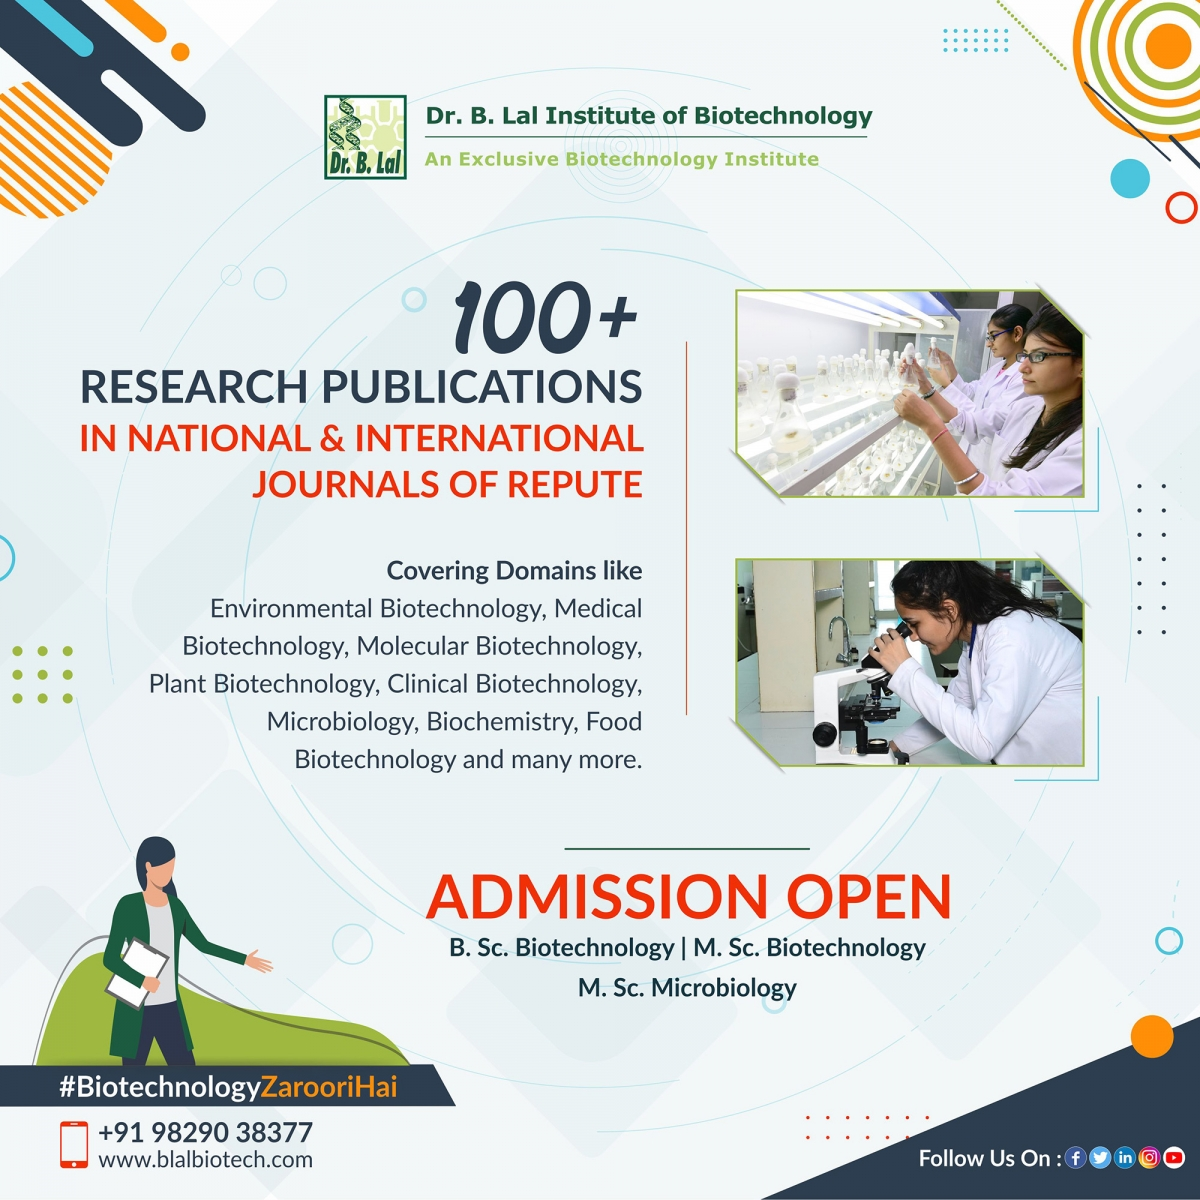 Research Publications | Dr. B. Lal Institute of Biotechnology